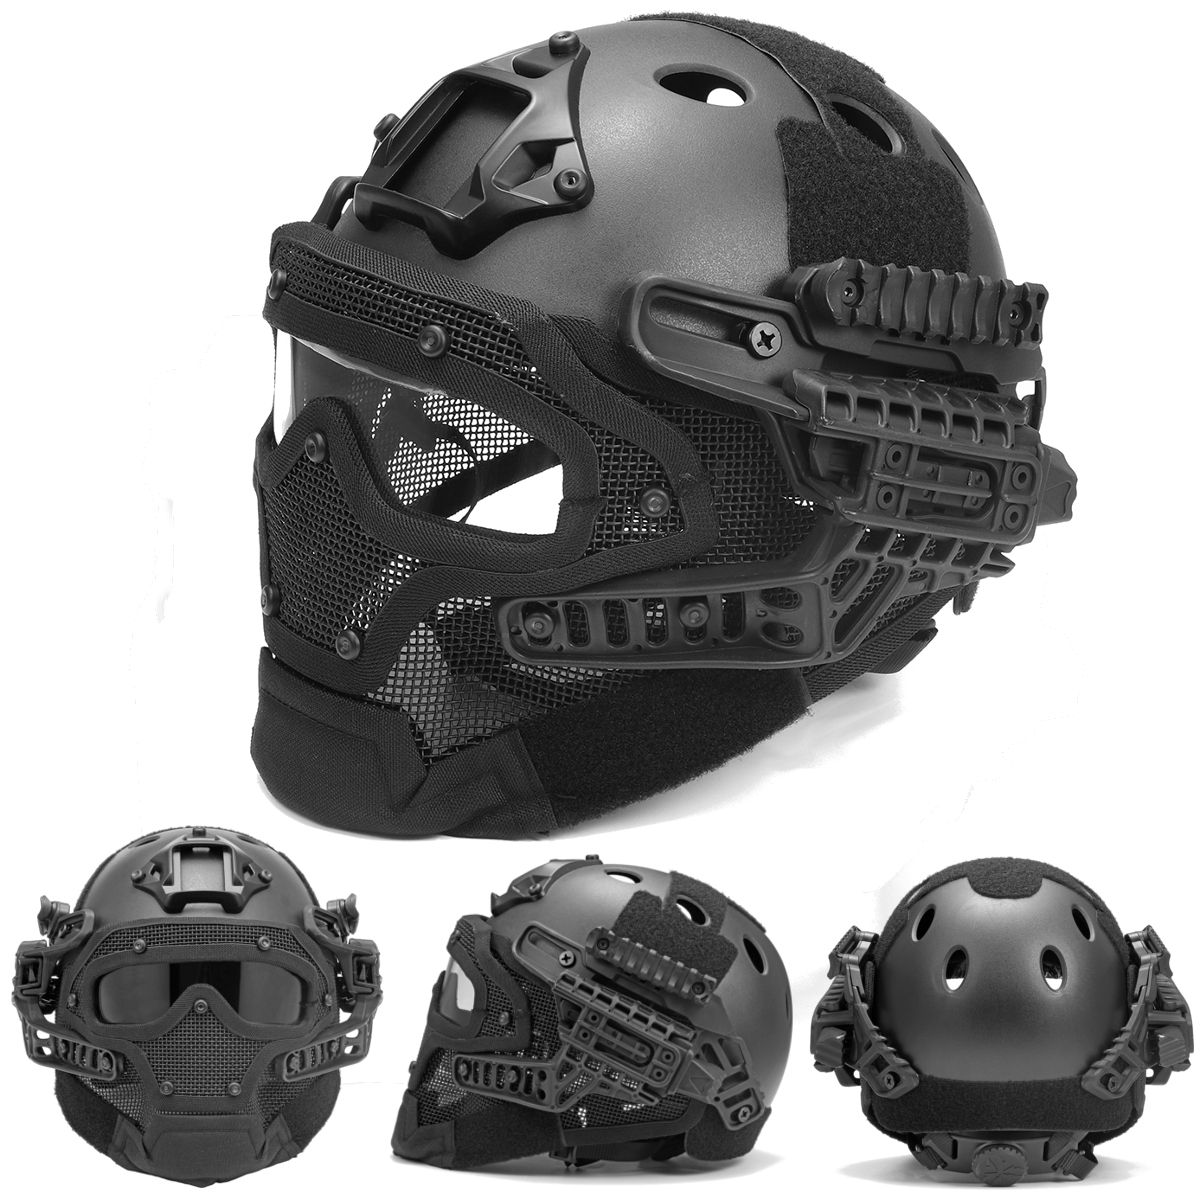 Tactical-Airsoft-Paintball-Fast-Helmet-Protective-w-Mask-Goggles-amp-G4-System